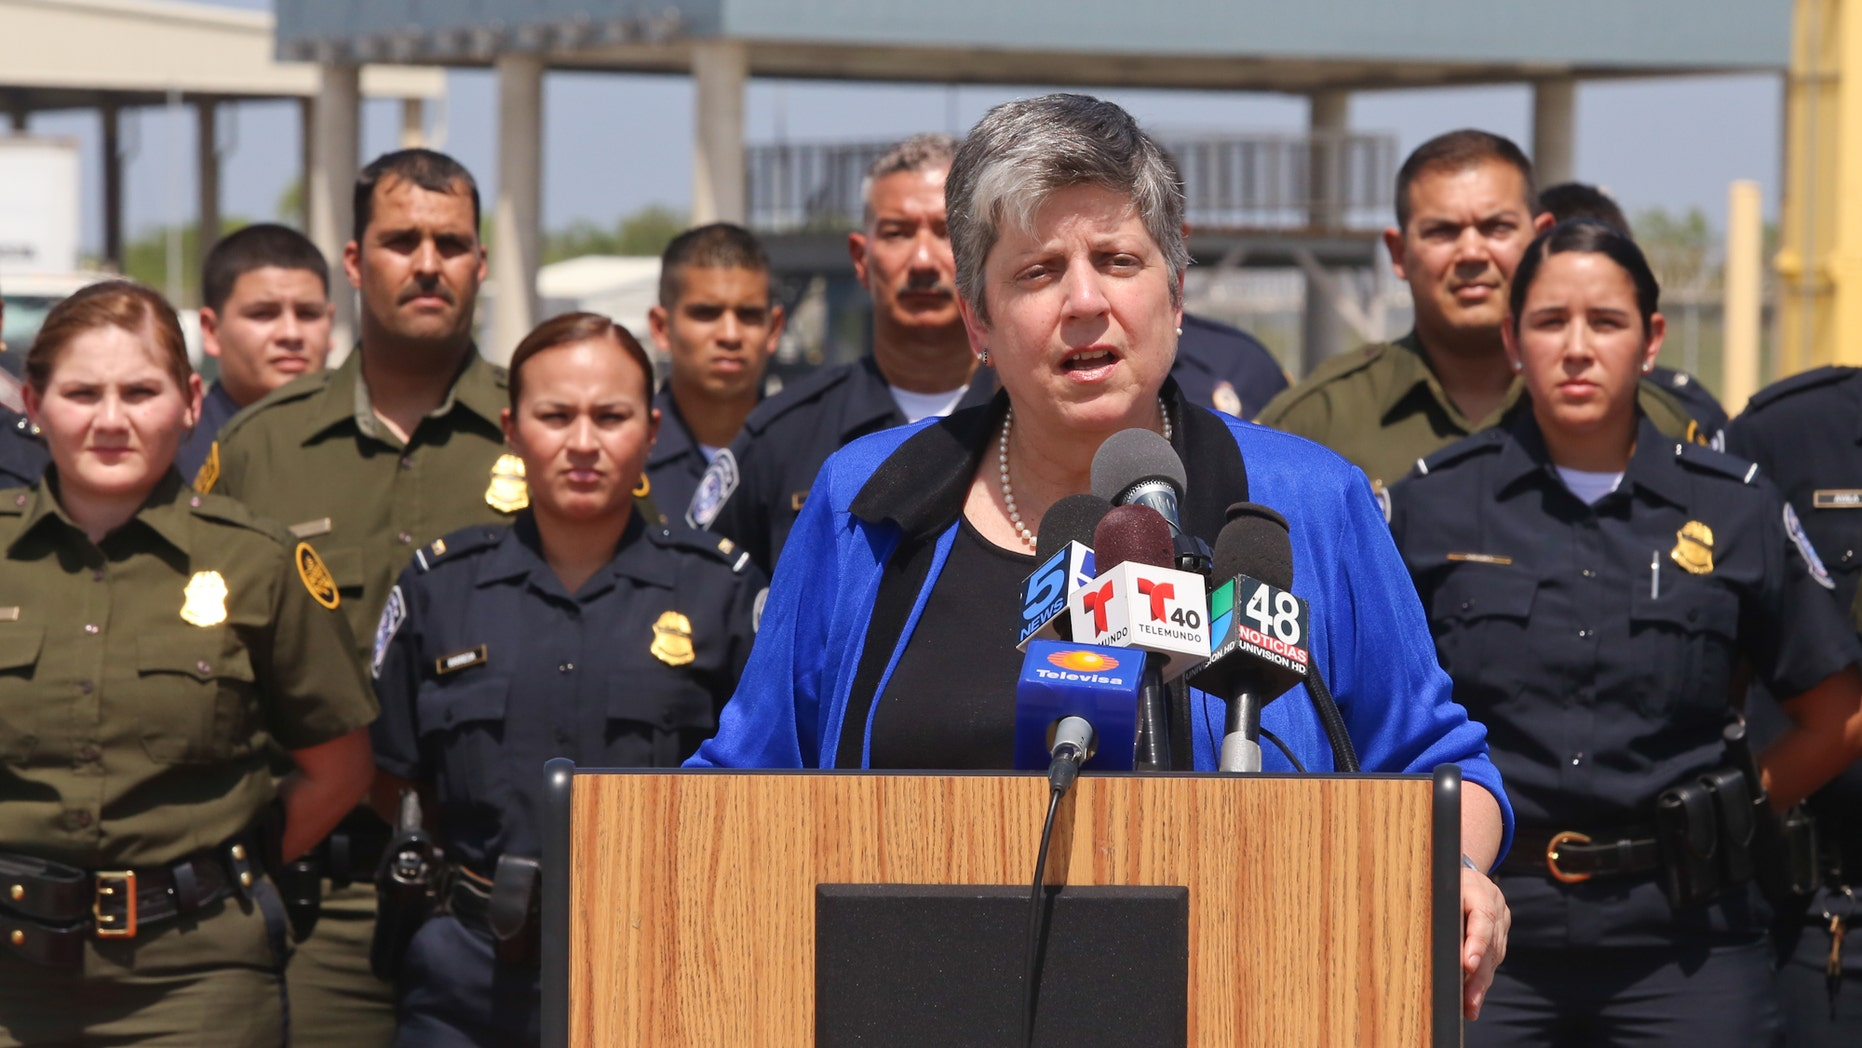 Homeland Security Secretary Janet Napolitano speaks during a brief stop at the Veterans International Bridge in Brownsville, Texas on Tuesday afternoon, July 23, 2013.